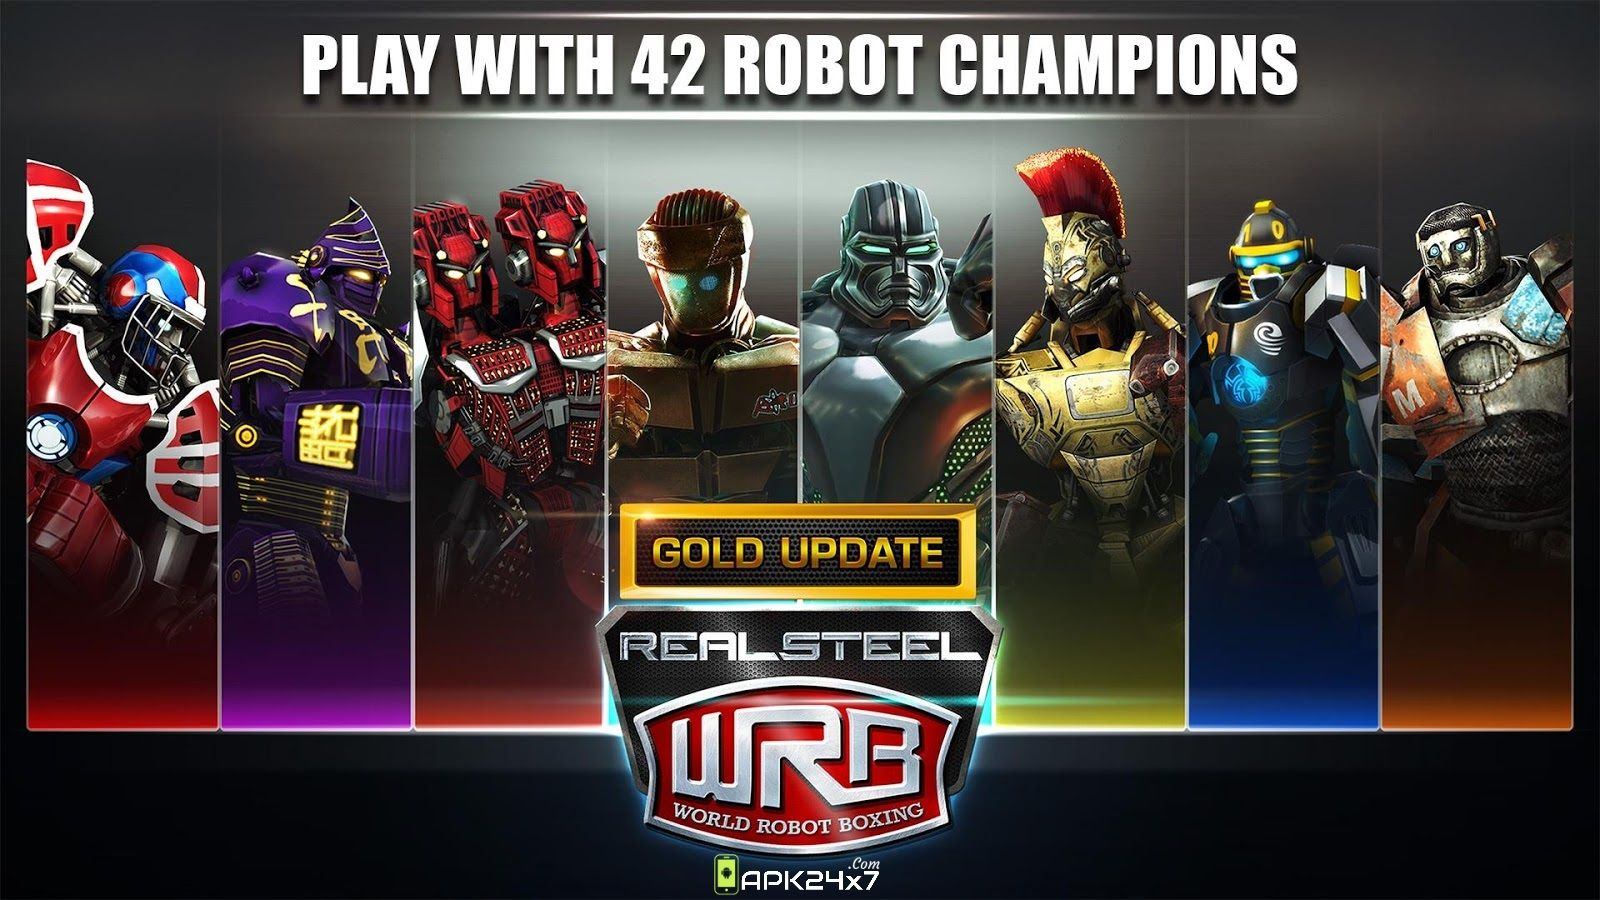 Real Steel World Robot Boxing v34.34.984 Mod APK + Data